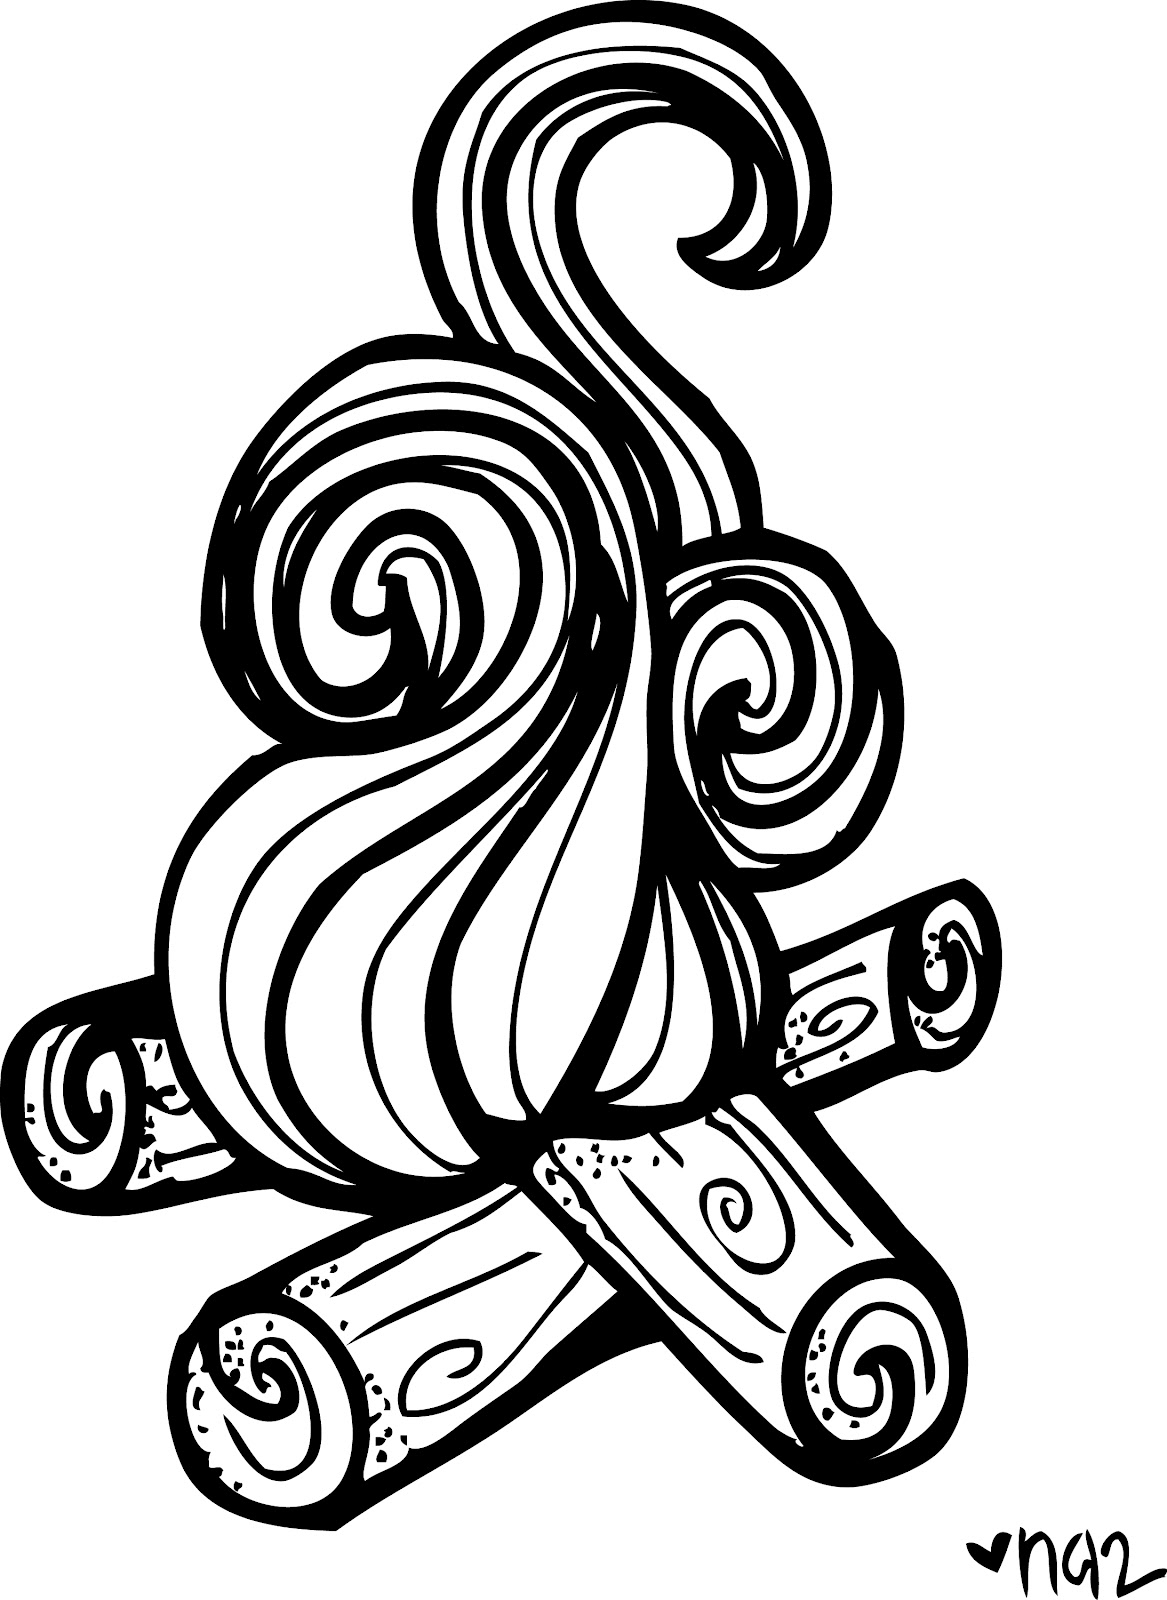 Campfire black and white clipart high res banner freeuse stock Free Bonfire Cliparts Black, Download Free Clip Art, Free Clip Art ... banner freeuse stock